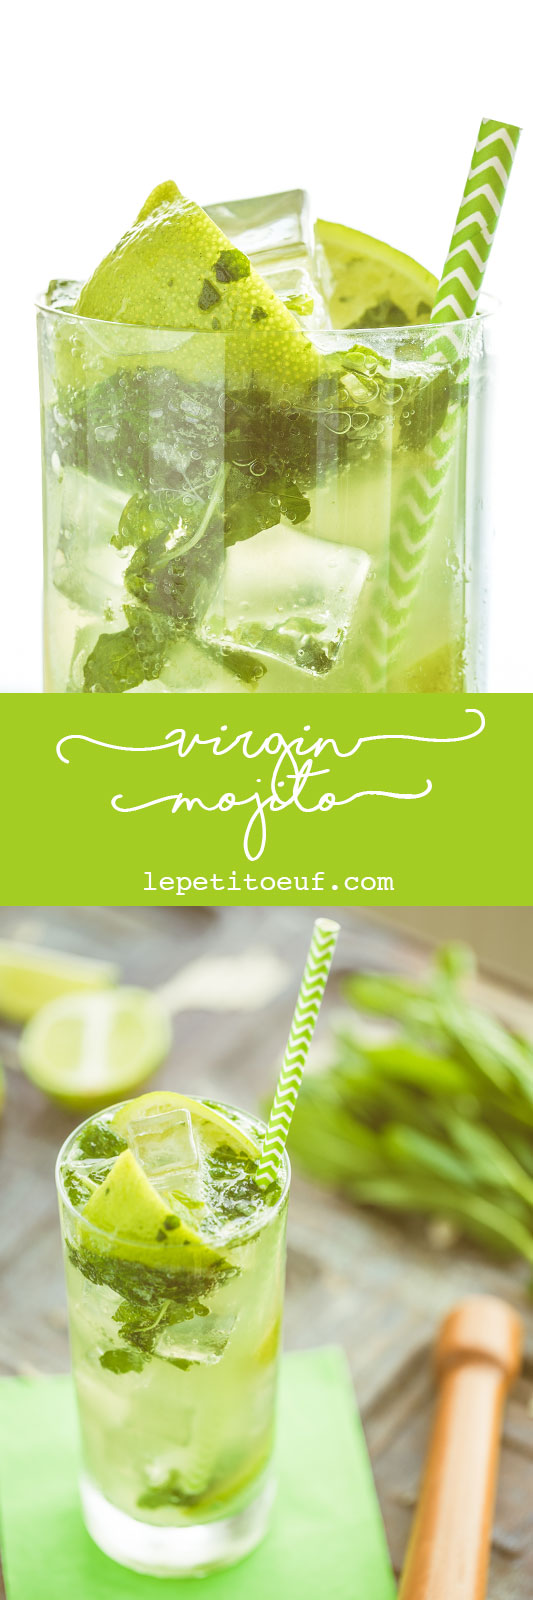 A virgin mojito, or 'nojito' is the most refreshing drink this side of a fresh lime soda. Perfect for a hot summer day or when you simply don't want alcohol, these alcohol free cocktails are stunningly tasty, filled bashed lime and mint, topped up with chilled soda and ice cubes. The perfect mocktail for any occasion.